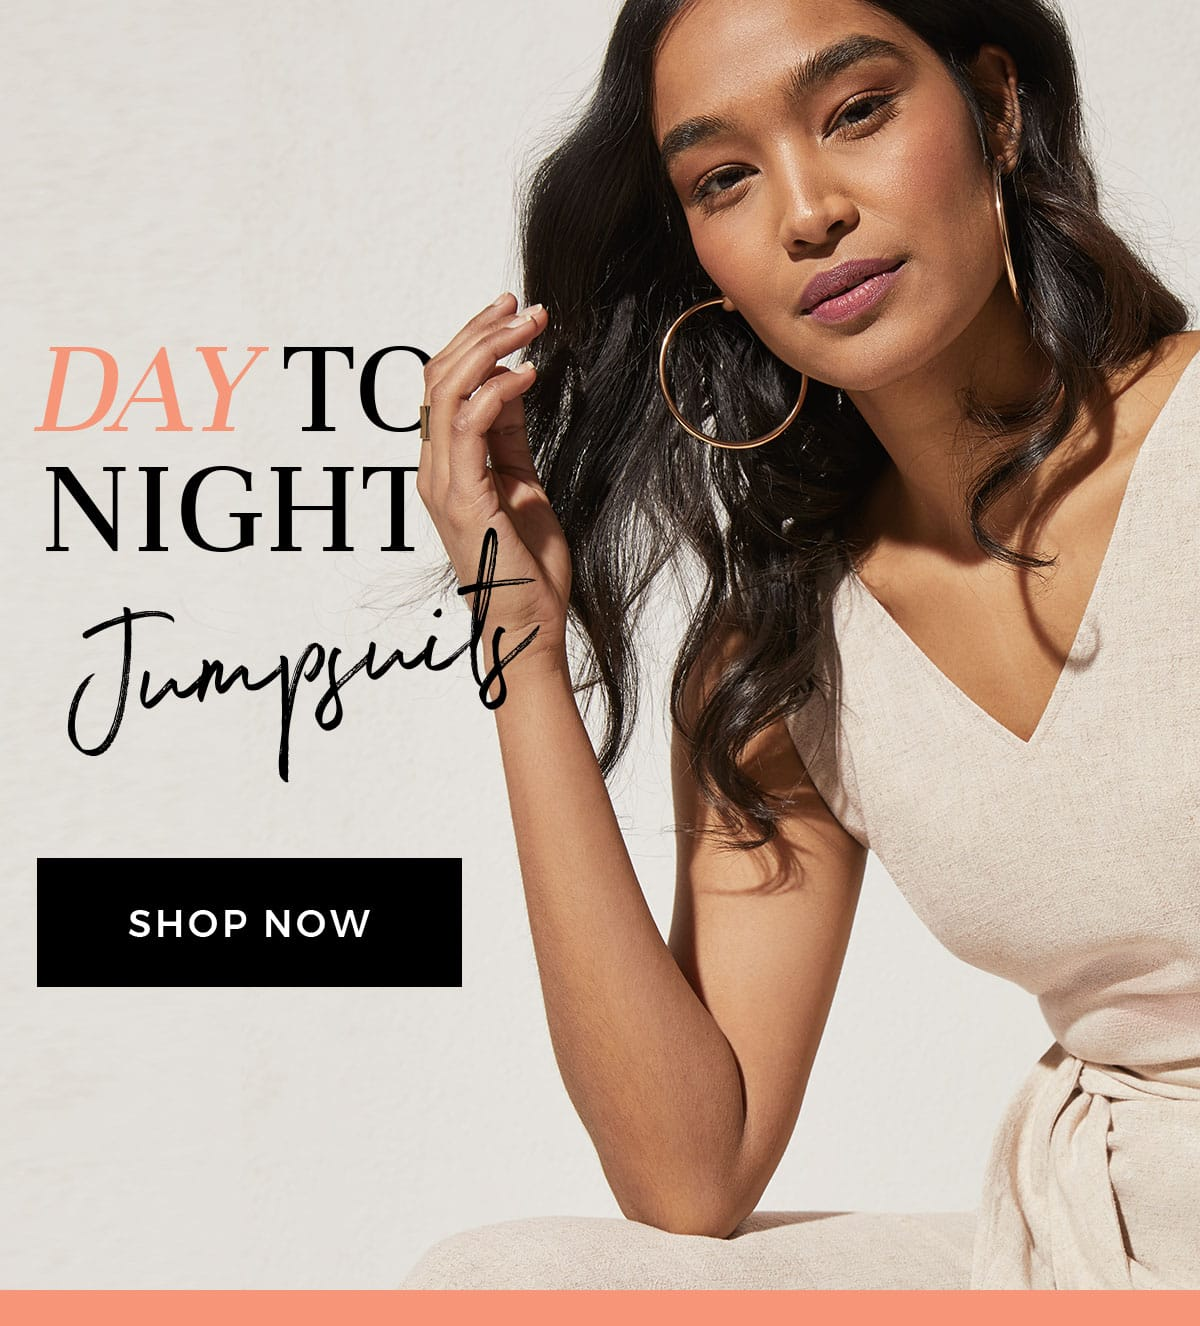 Day to night Jumpsuits. Shop Now.